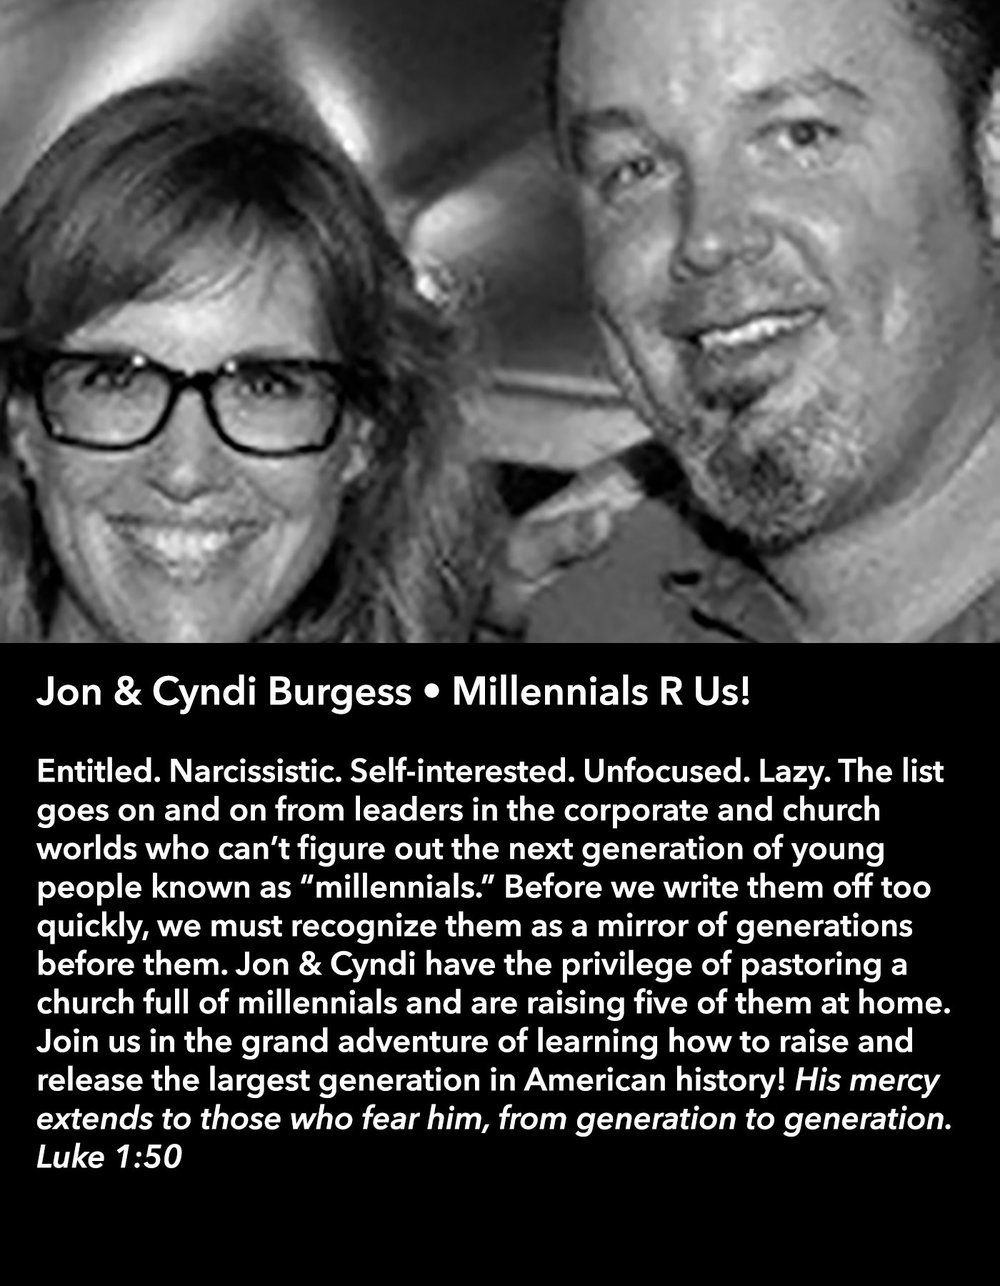 Jon & Cyndi Burgess • Millennials R Us! • Friday Morning, March 17 • 10:30 – 11:45 am